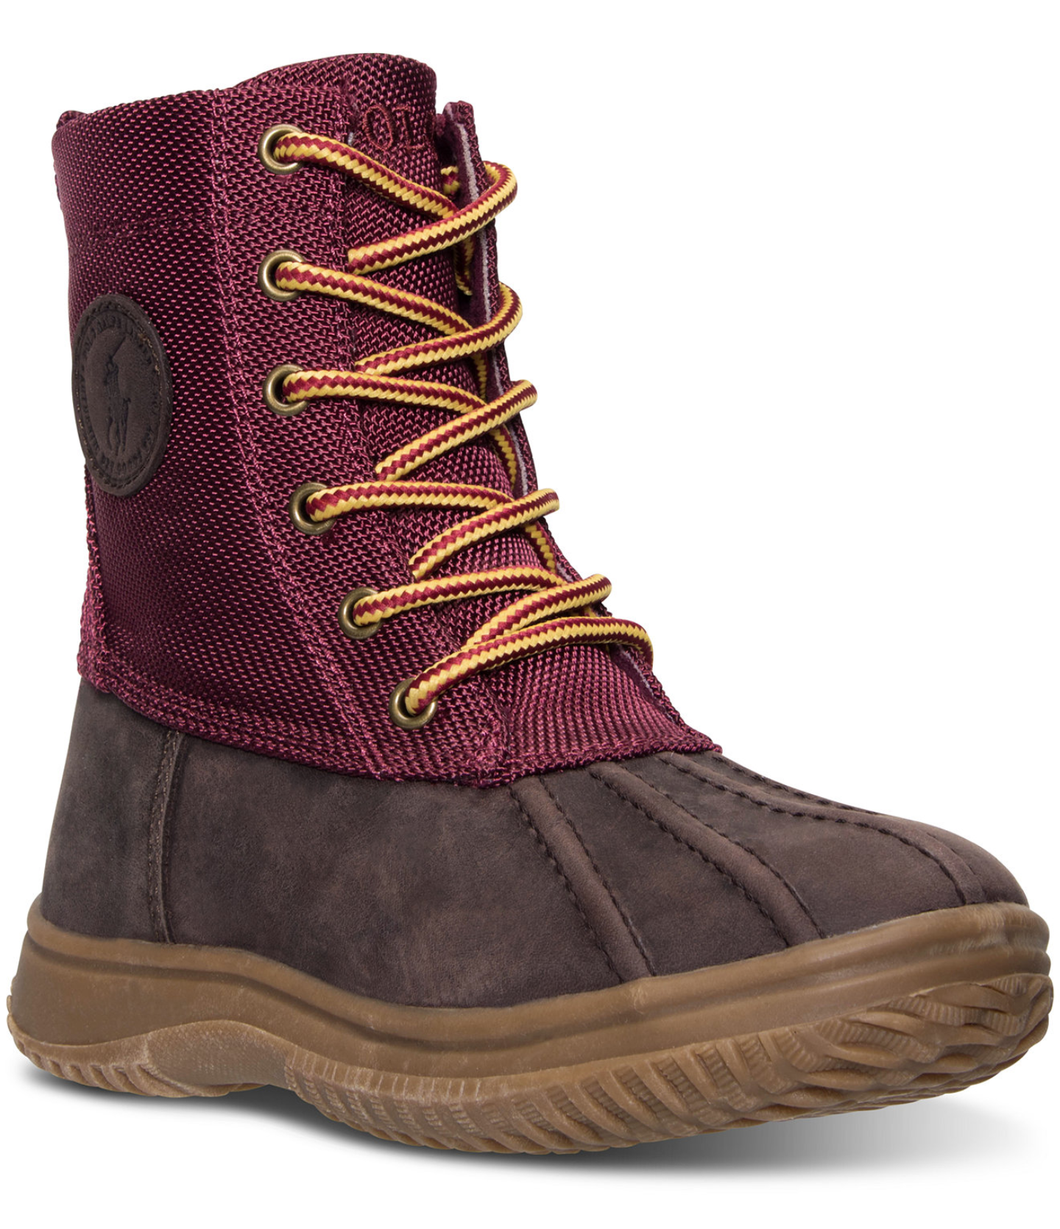 Youth Girl's Polo Duksbury Boots. Moroon\Chocolate